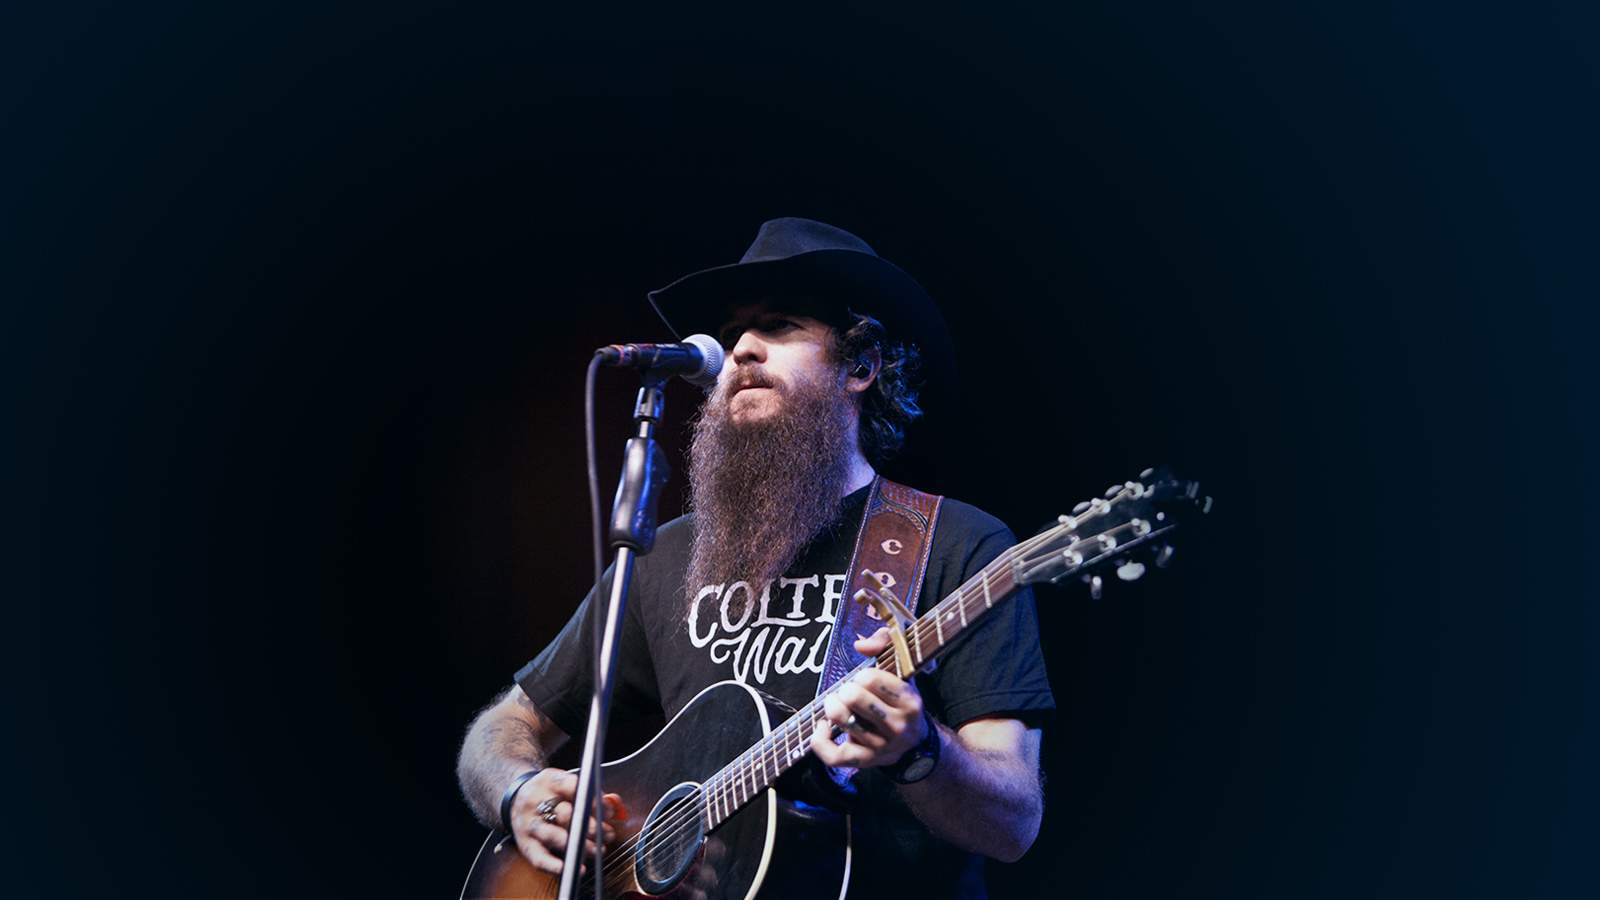 Cody Jinks (Rescheduled from 3/27/2020, 10/9/2020)